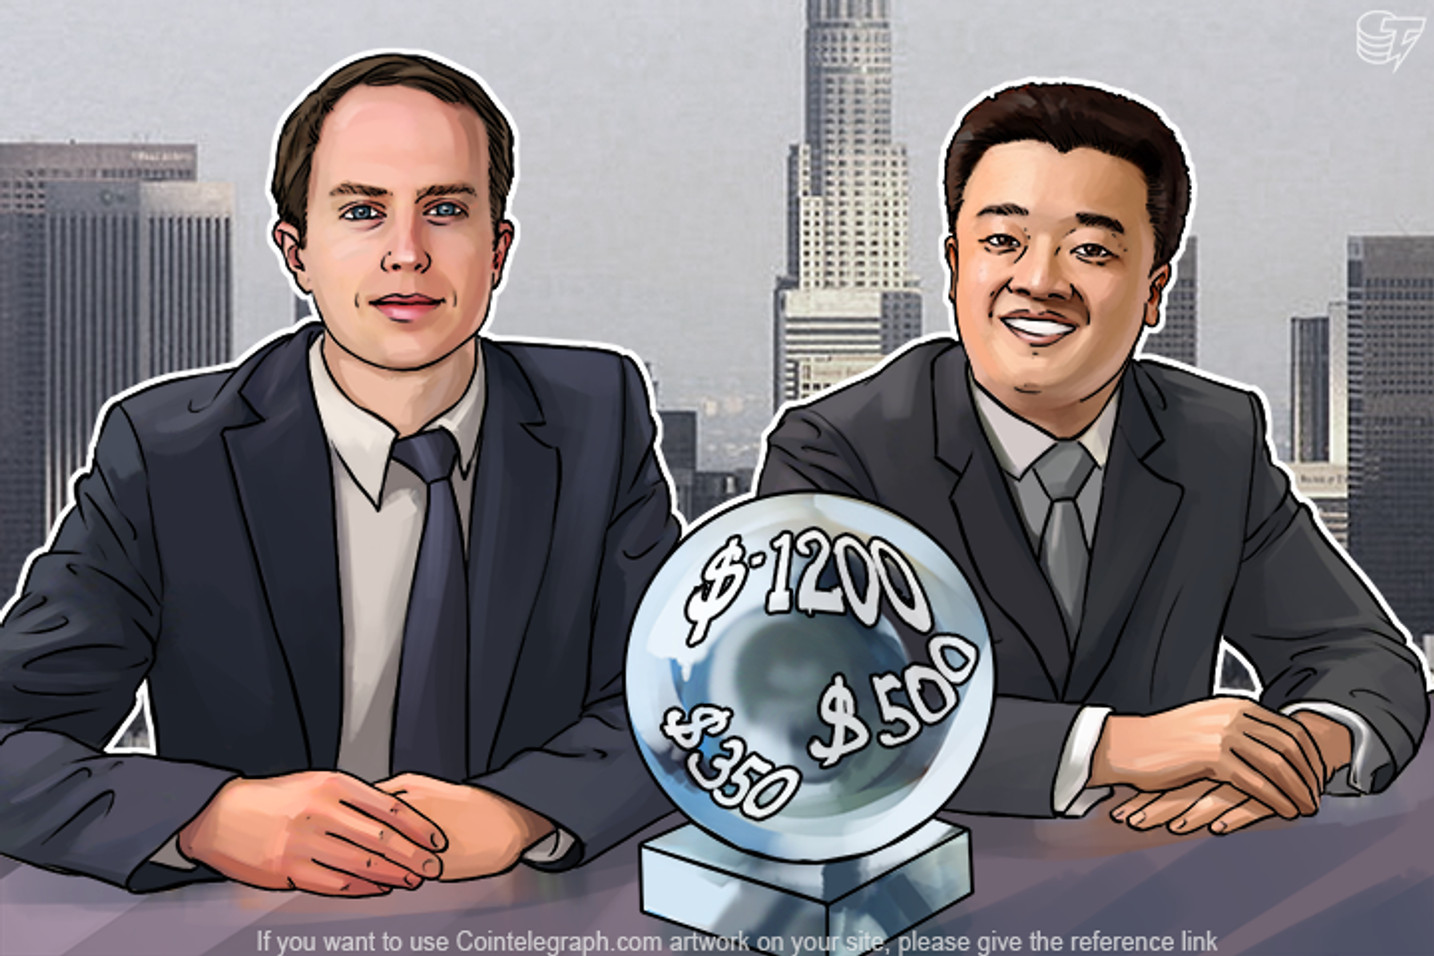 Expect Bitcoin Price to Reach US$1,200 or More Next Year, Experts Say